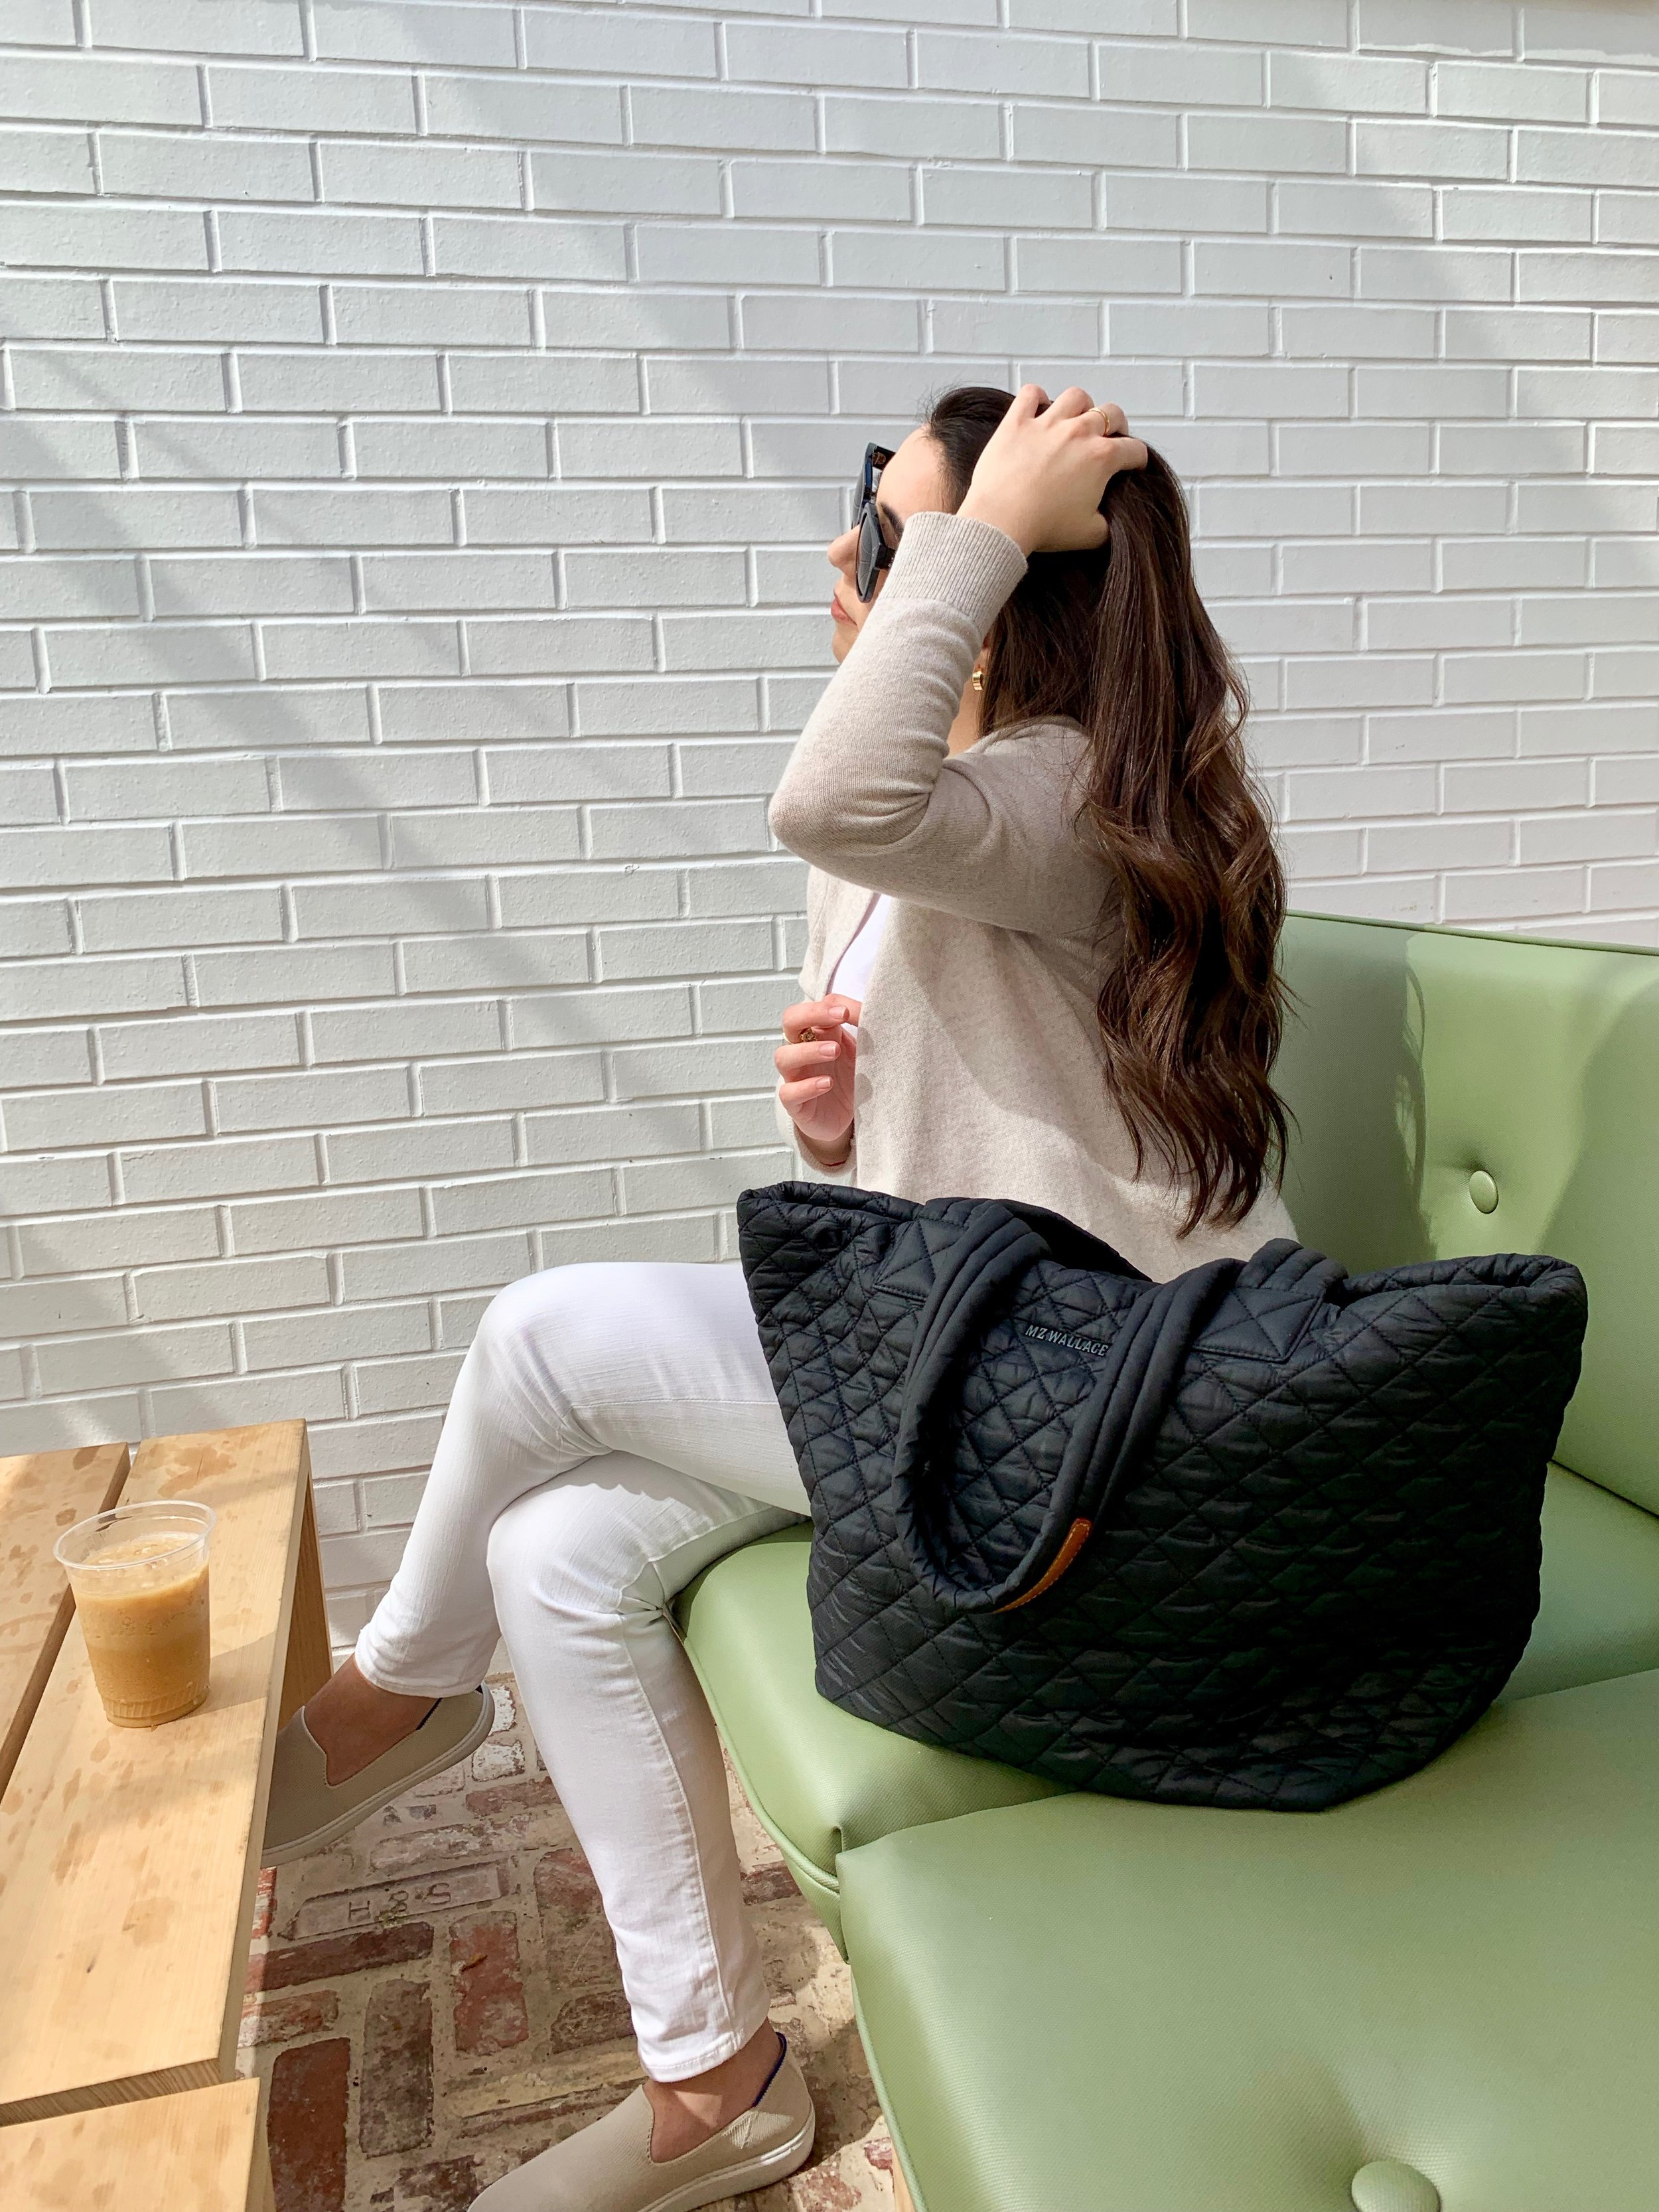 TOTE-ALLY OBSESSED - When it comes to accessories, every closet needs a classic black tote— One that's chic and versatile.